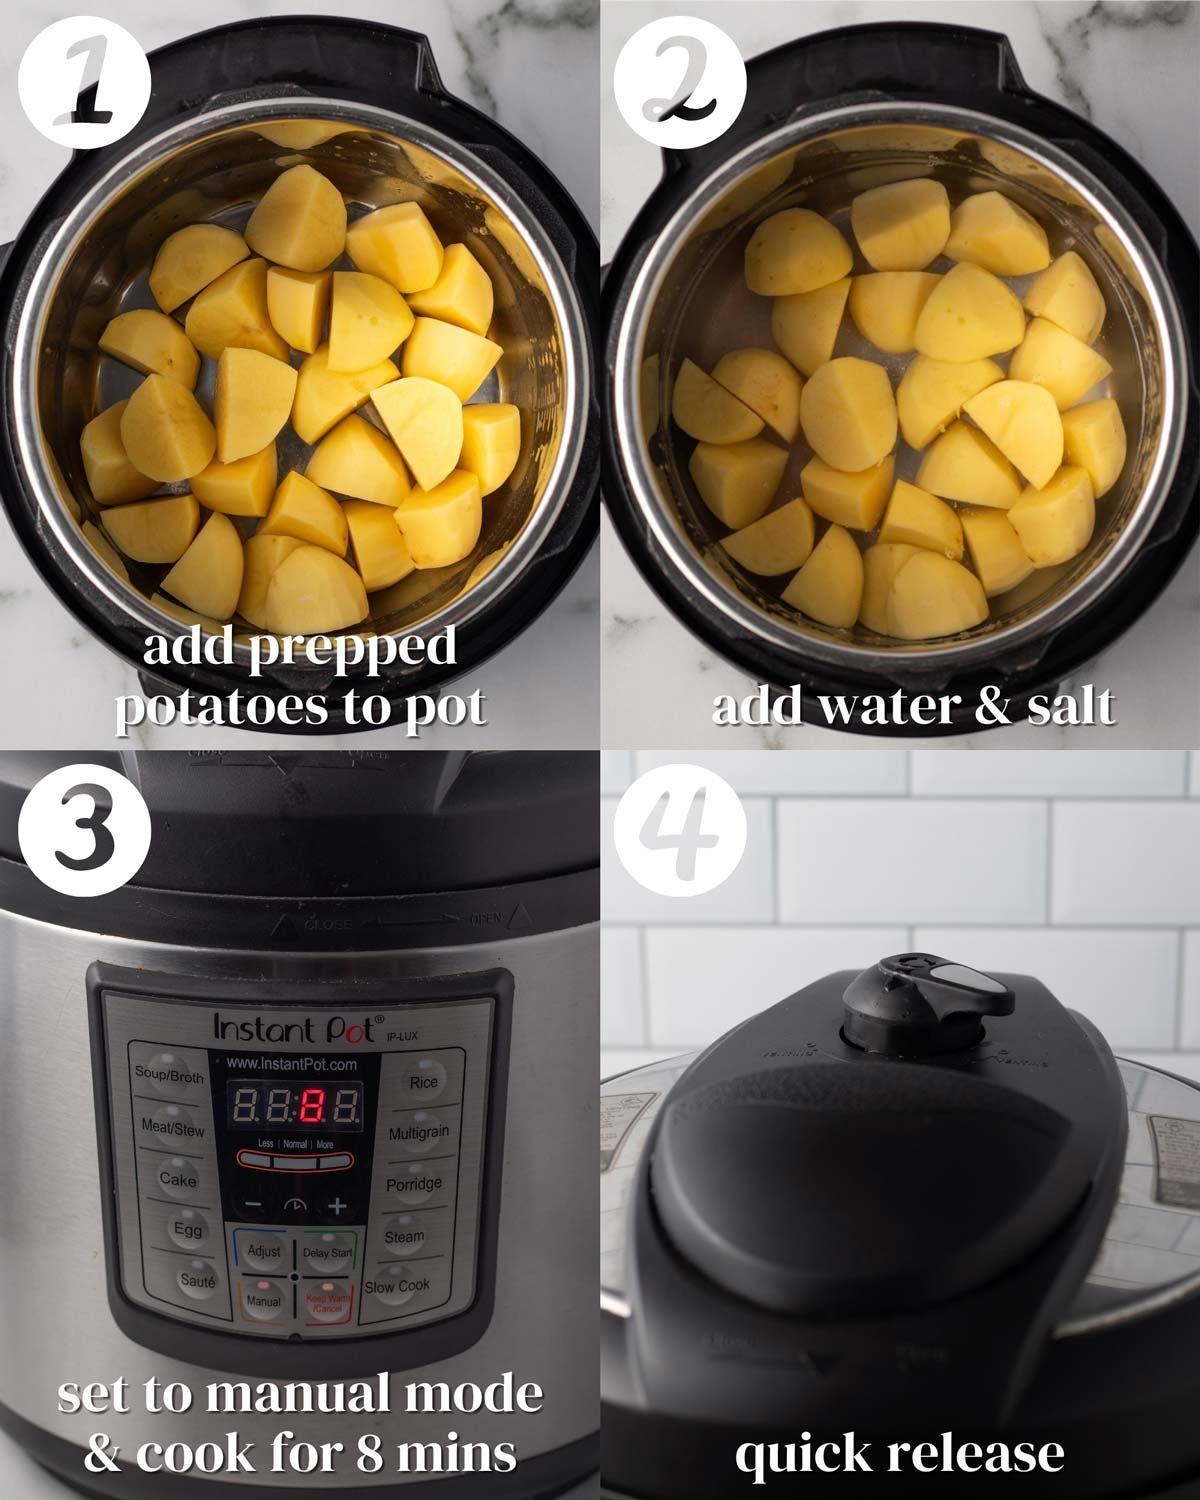 A collage of steps 1-4. 1) Add prepped potatoes to pot. 2) Add water and salt. 3) Set to manual mode for 8 minutes. 4) Quick release.